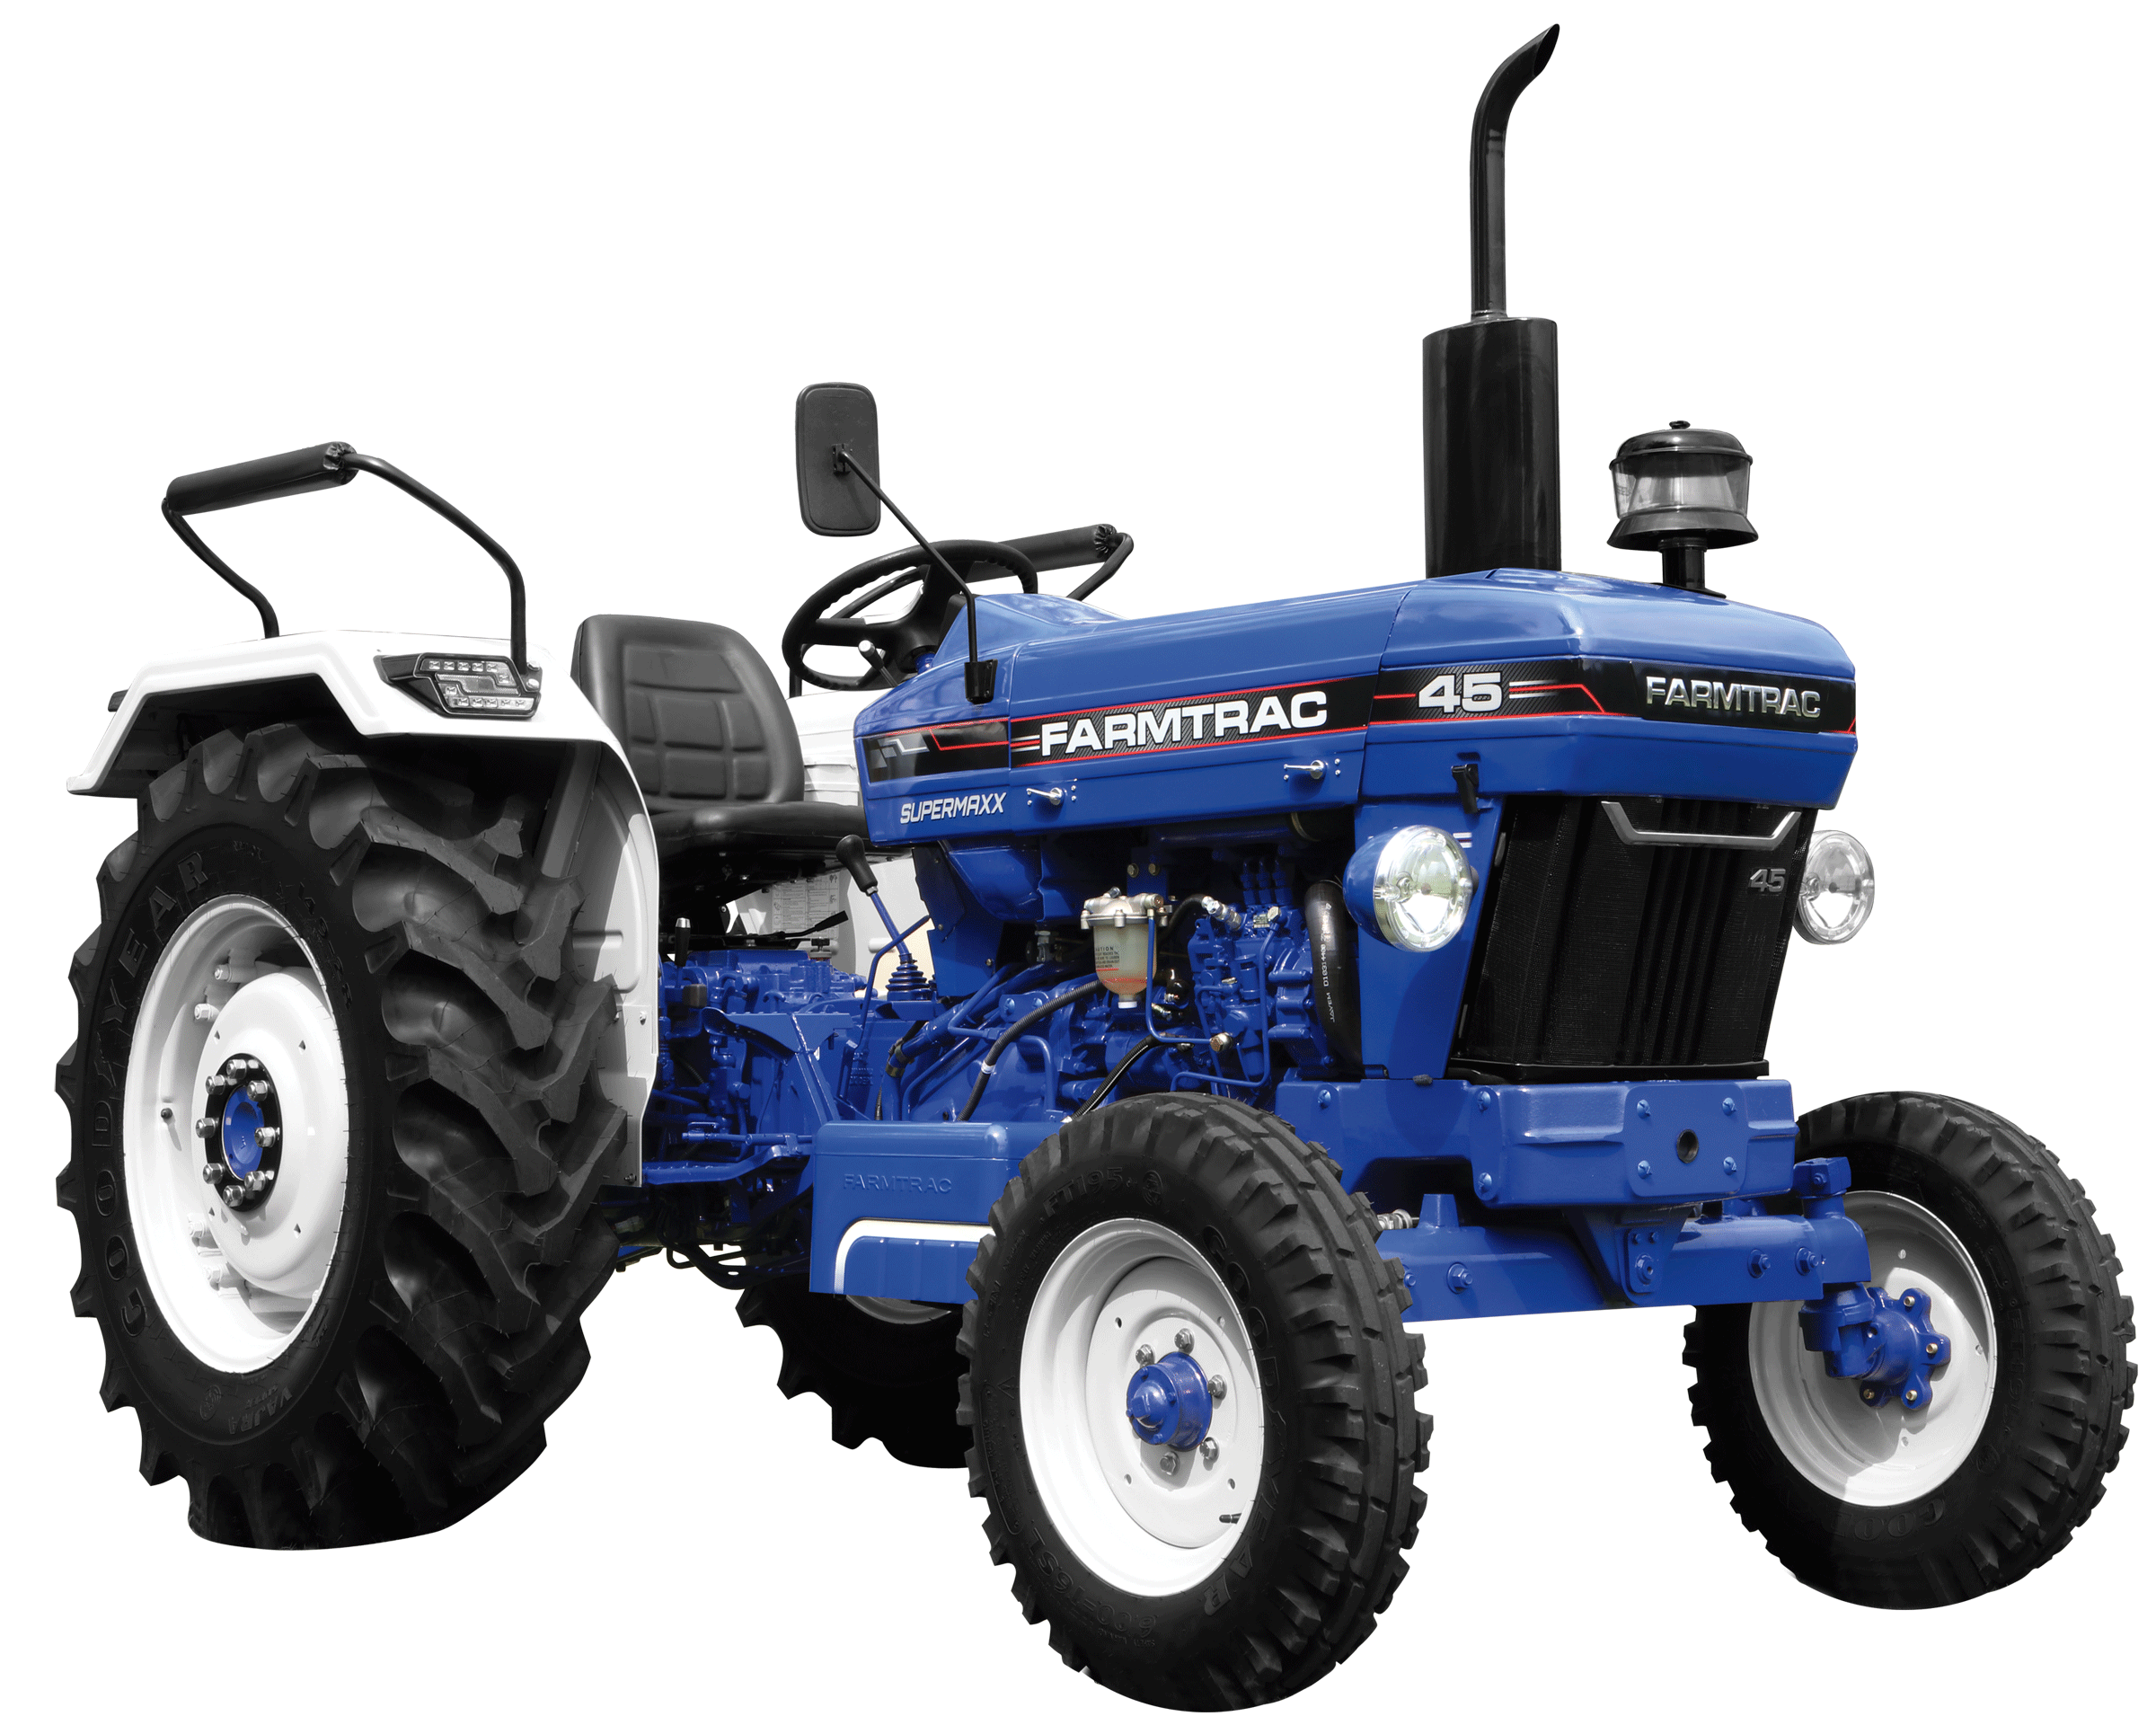 236/farmtrac-45-classic-tractorgyan.png